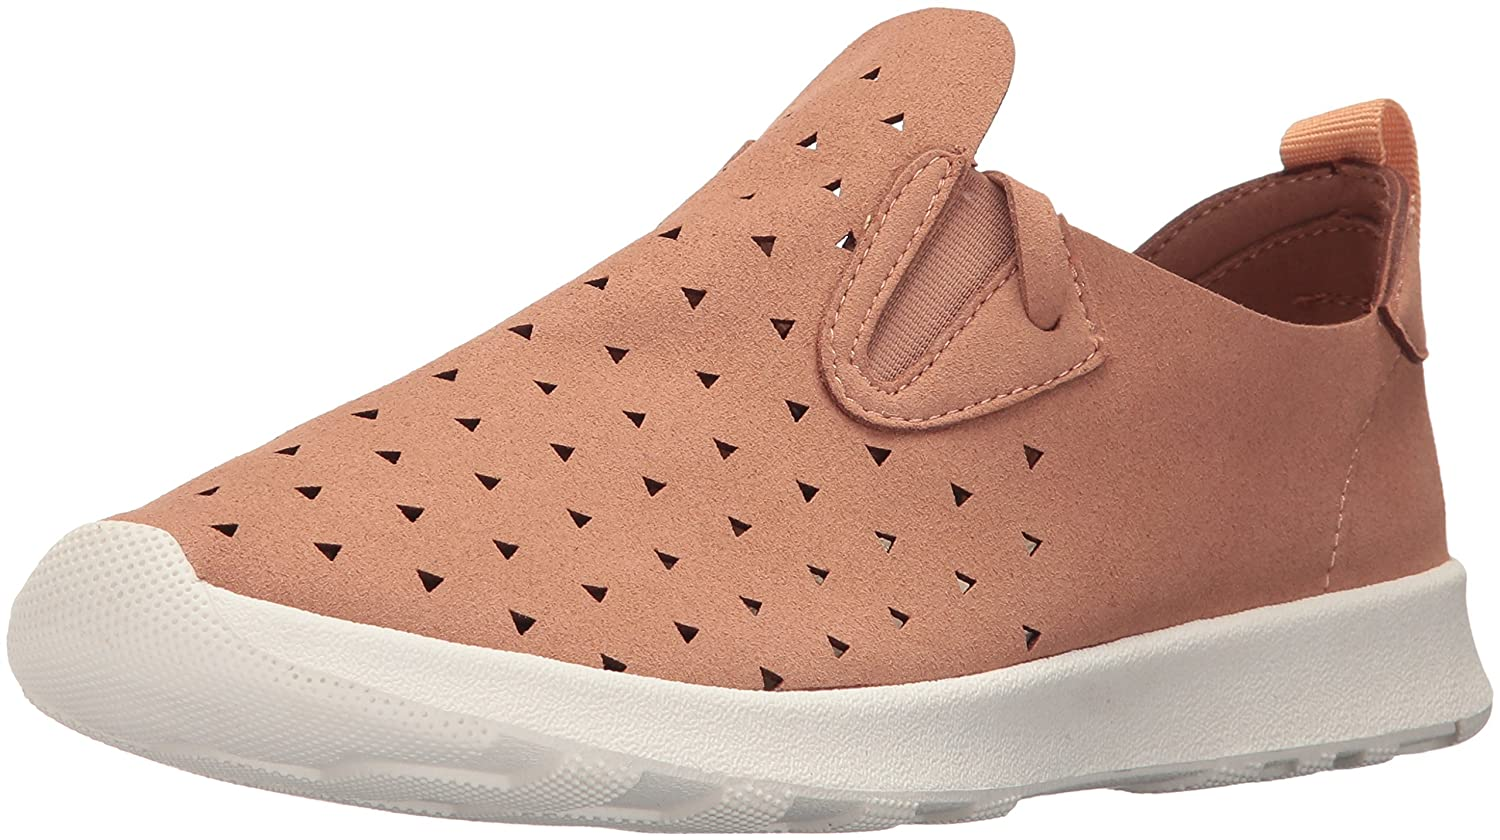 Not Rated Women's Marlum Fashion Sneaker B06Y4GFCWB 7 M US|Nude